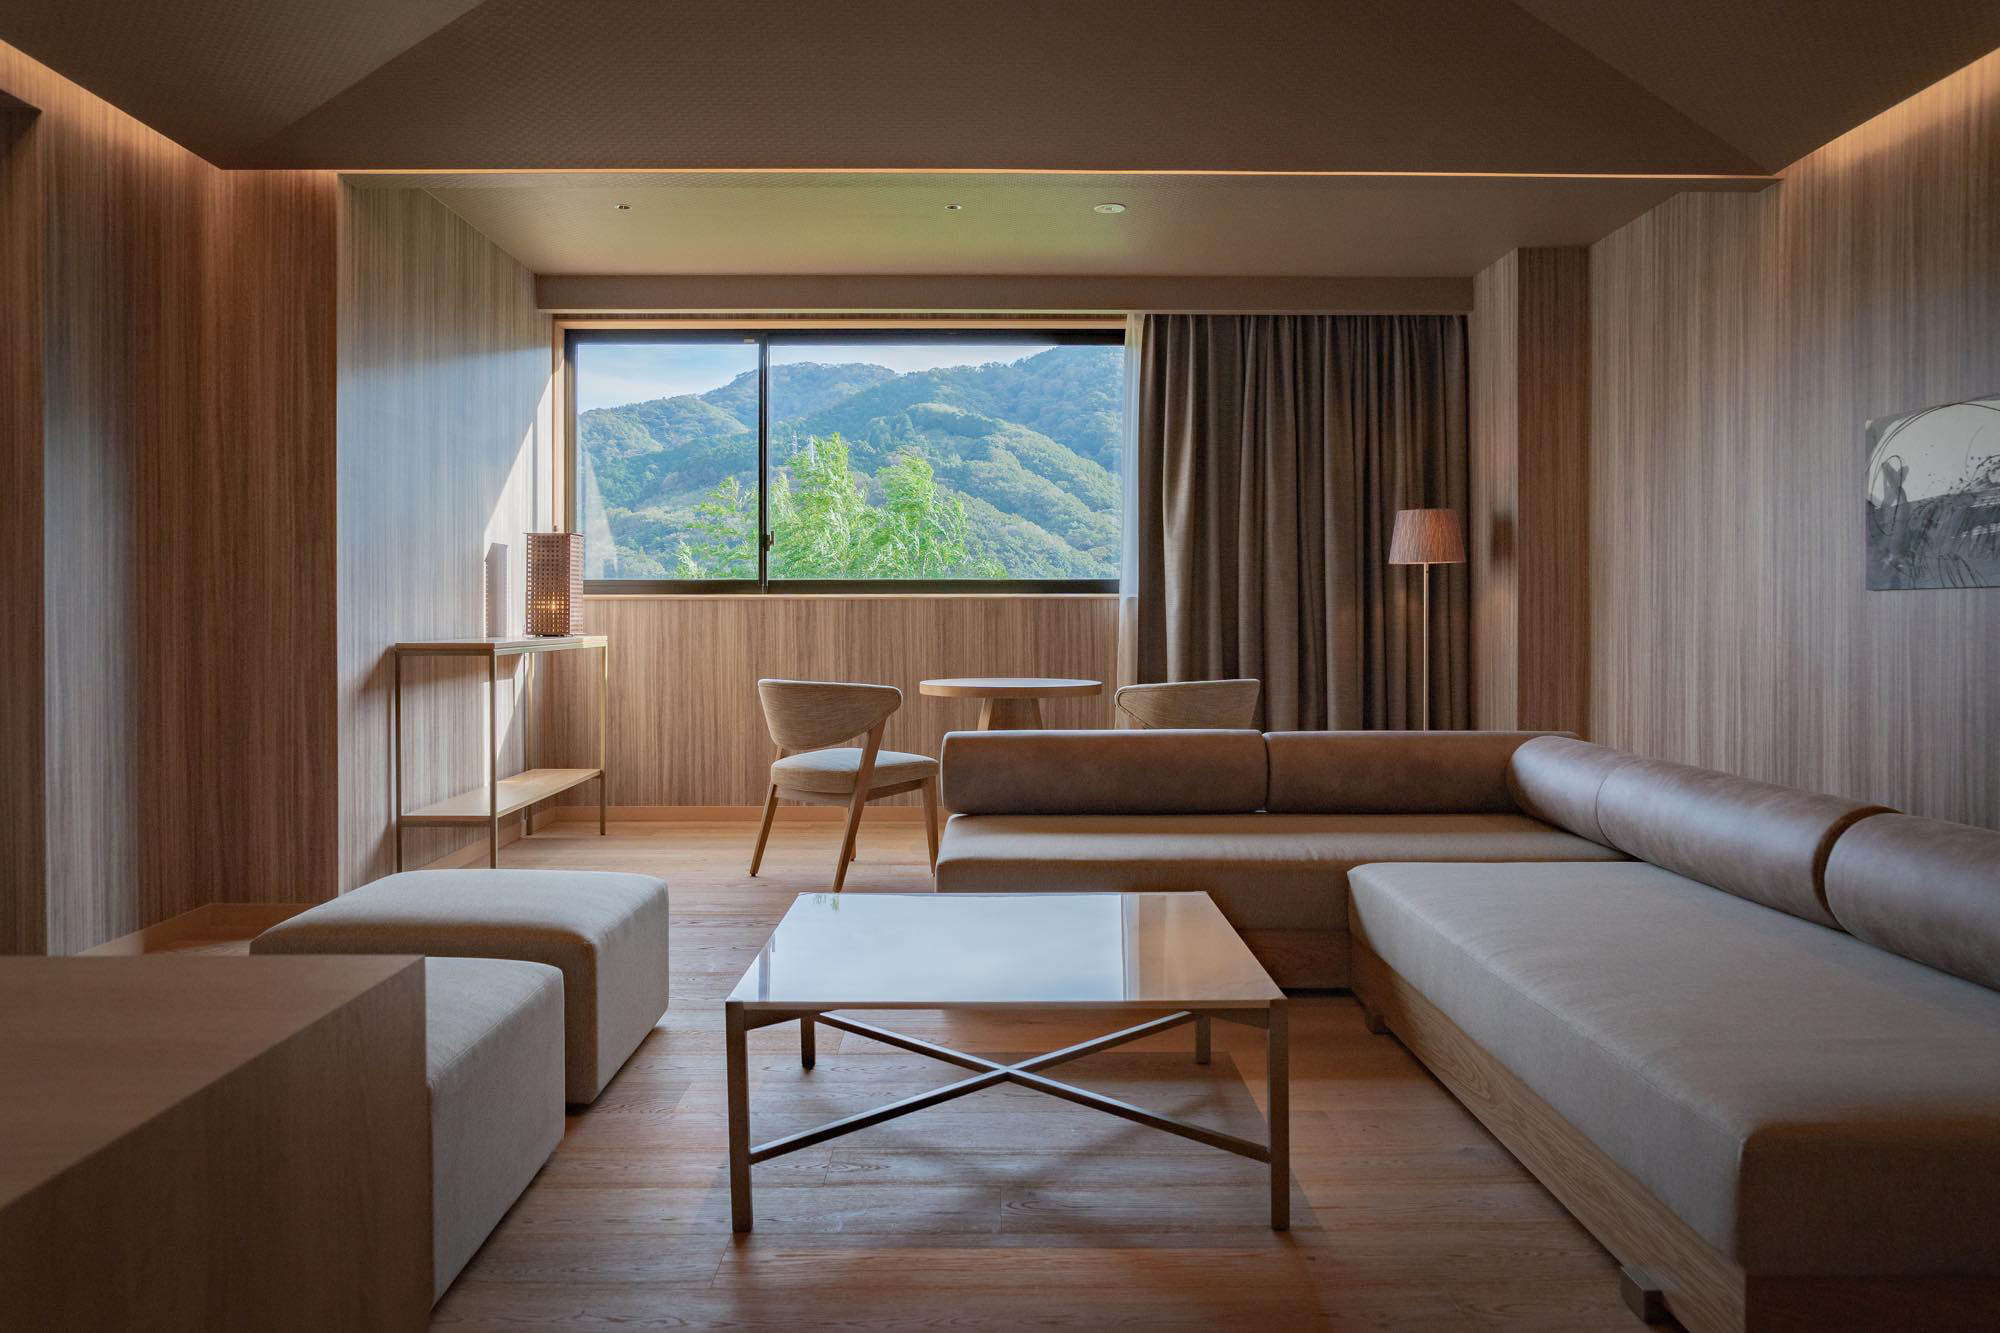 Miwa Yugawara features 17 guest rooms in total, including one suite room.